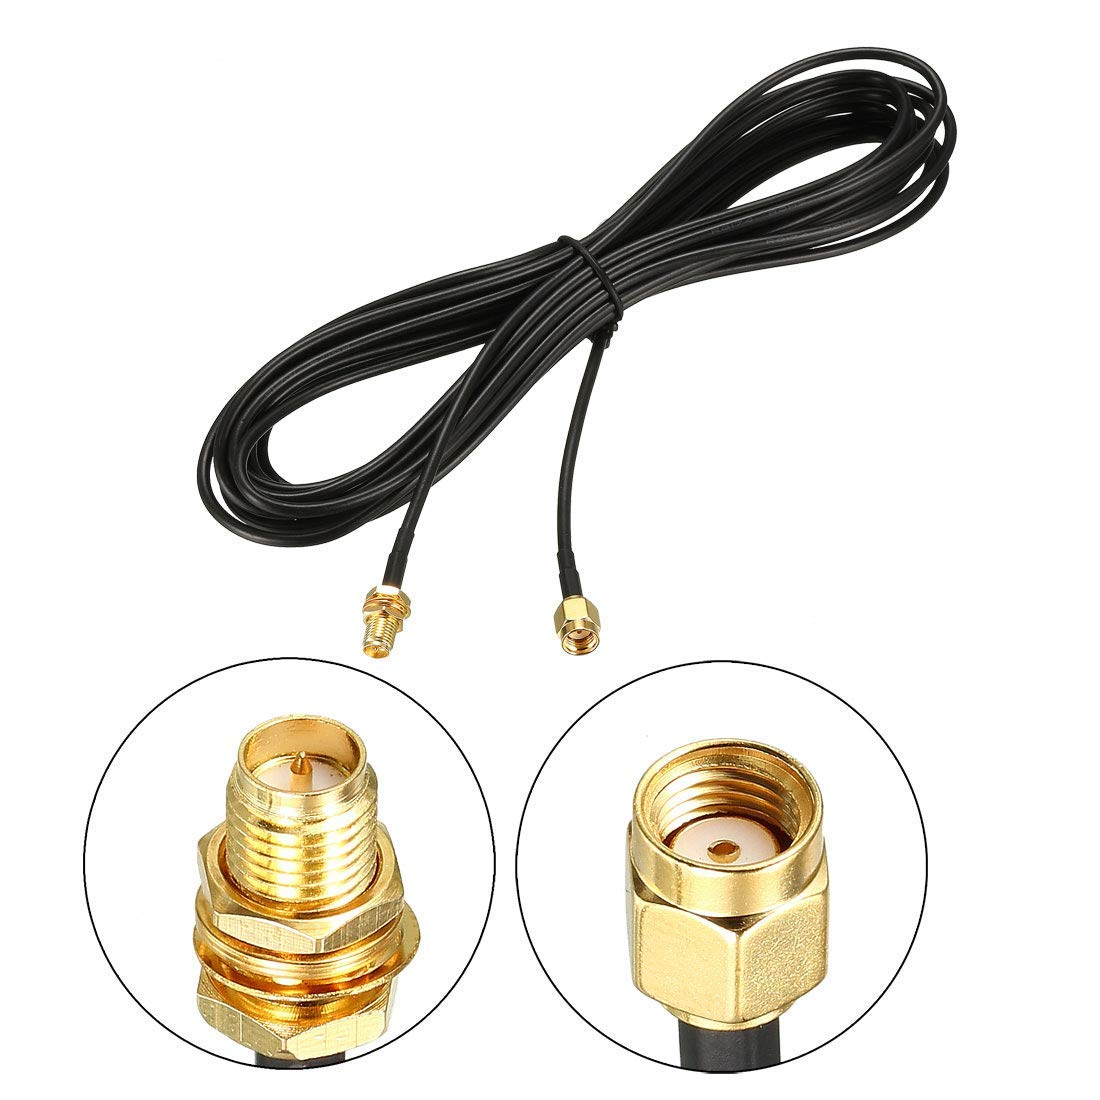 Antenna Extension Cable RP-SMA Male to RP-SMA Female Low Loss 33 feet RG174 2 Pieces